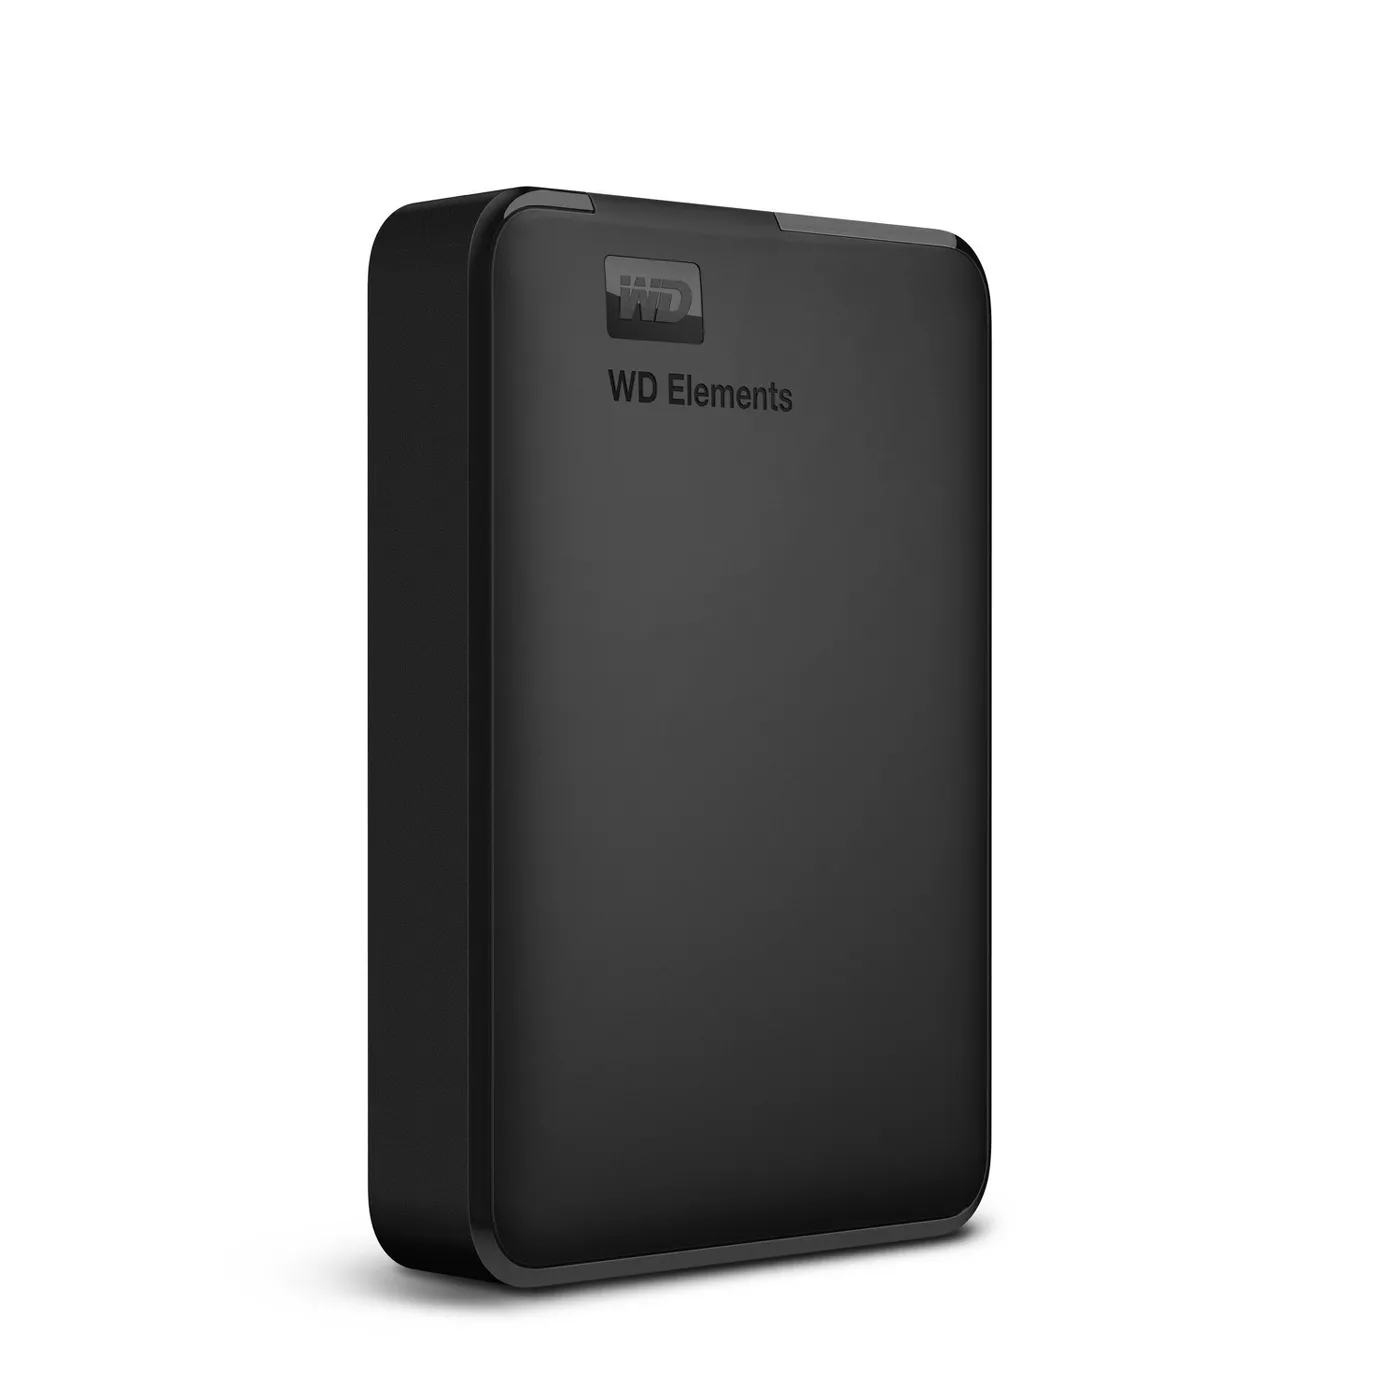 22% Off Western Digital 3TB Elements, USB 3.0 Portable Hard Drive